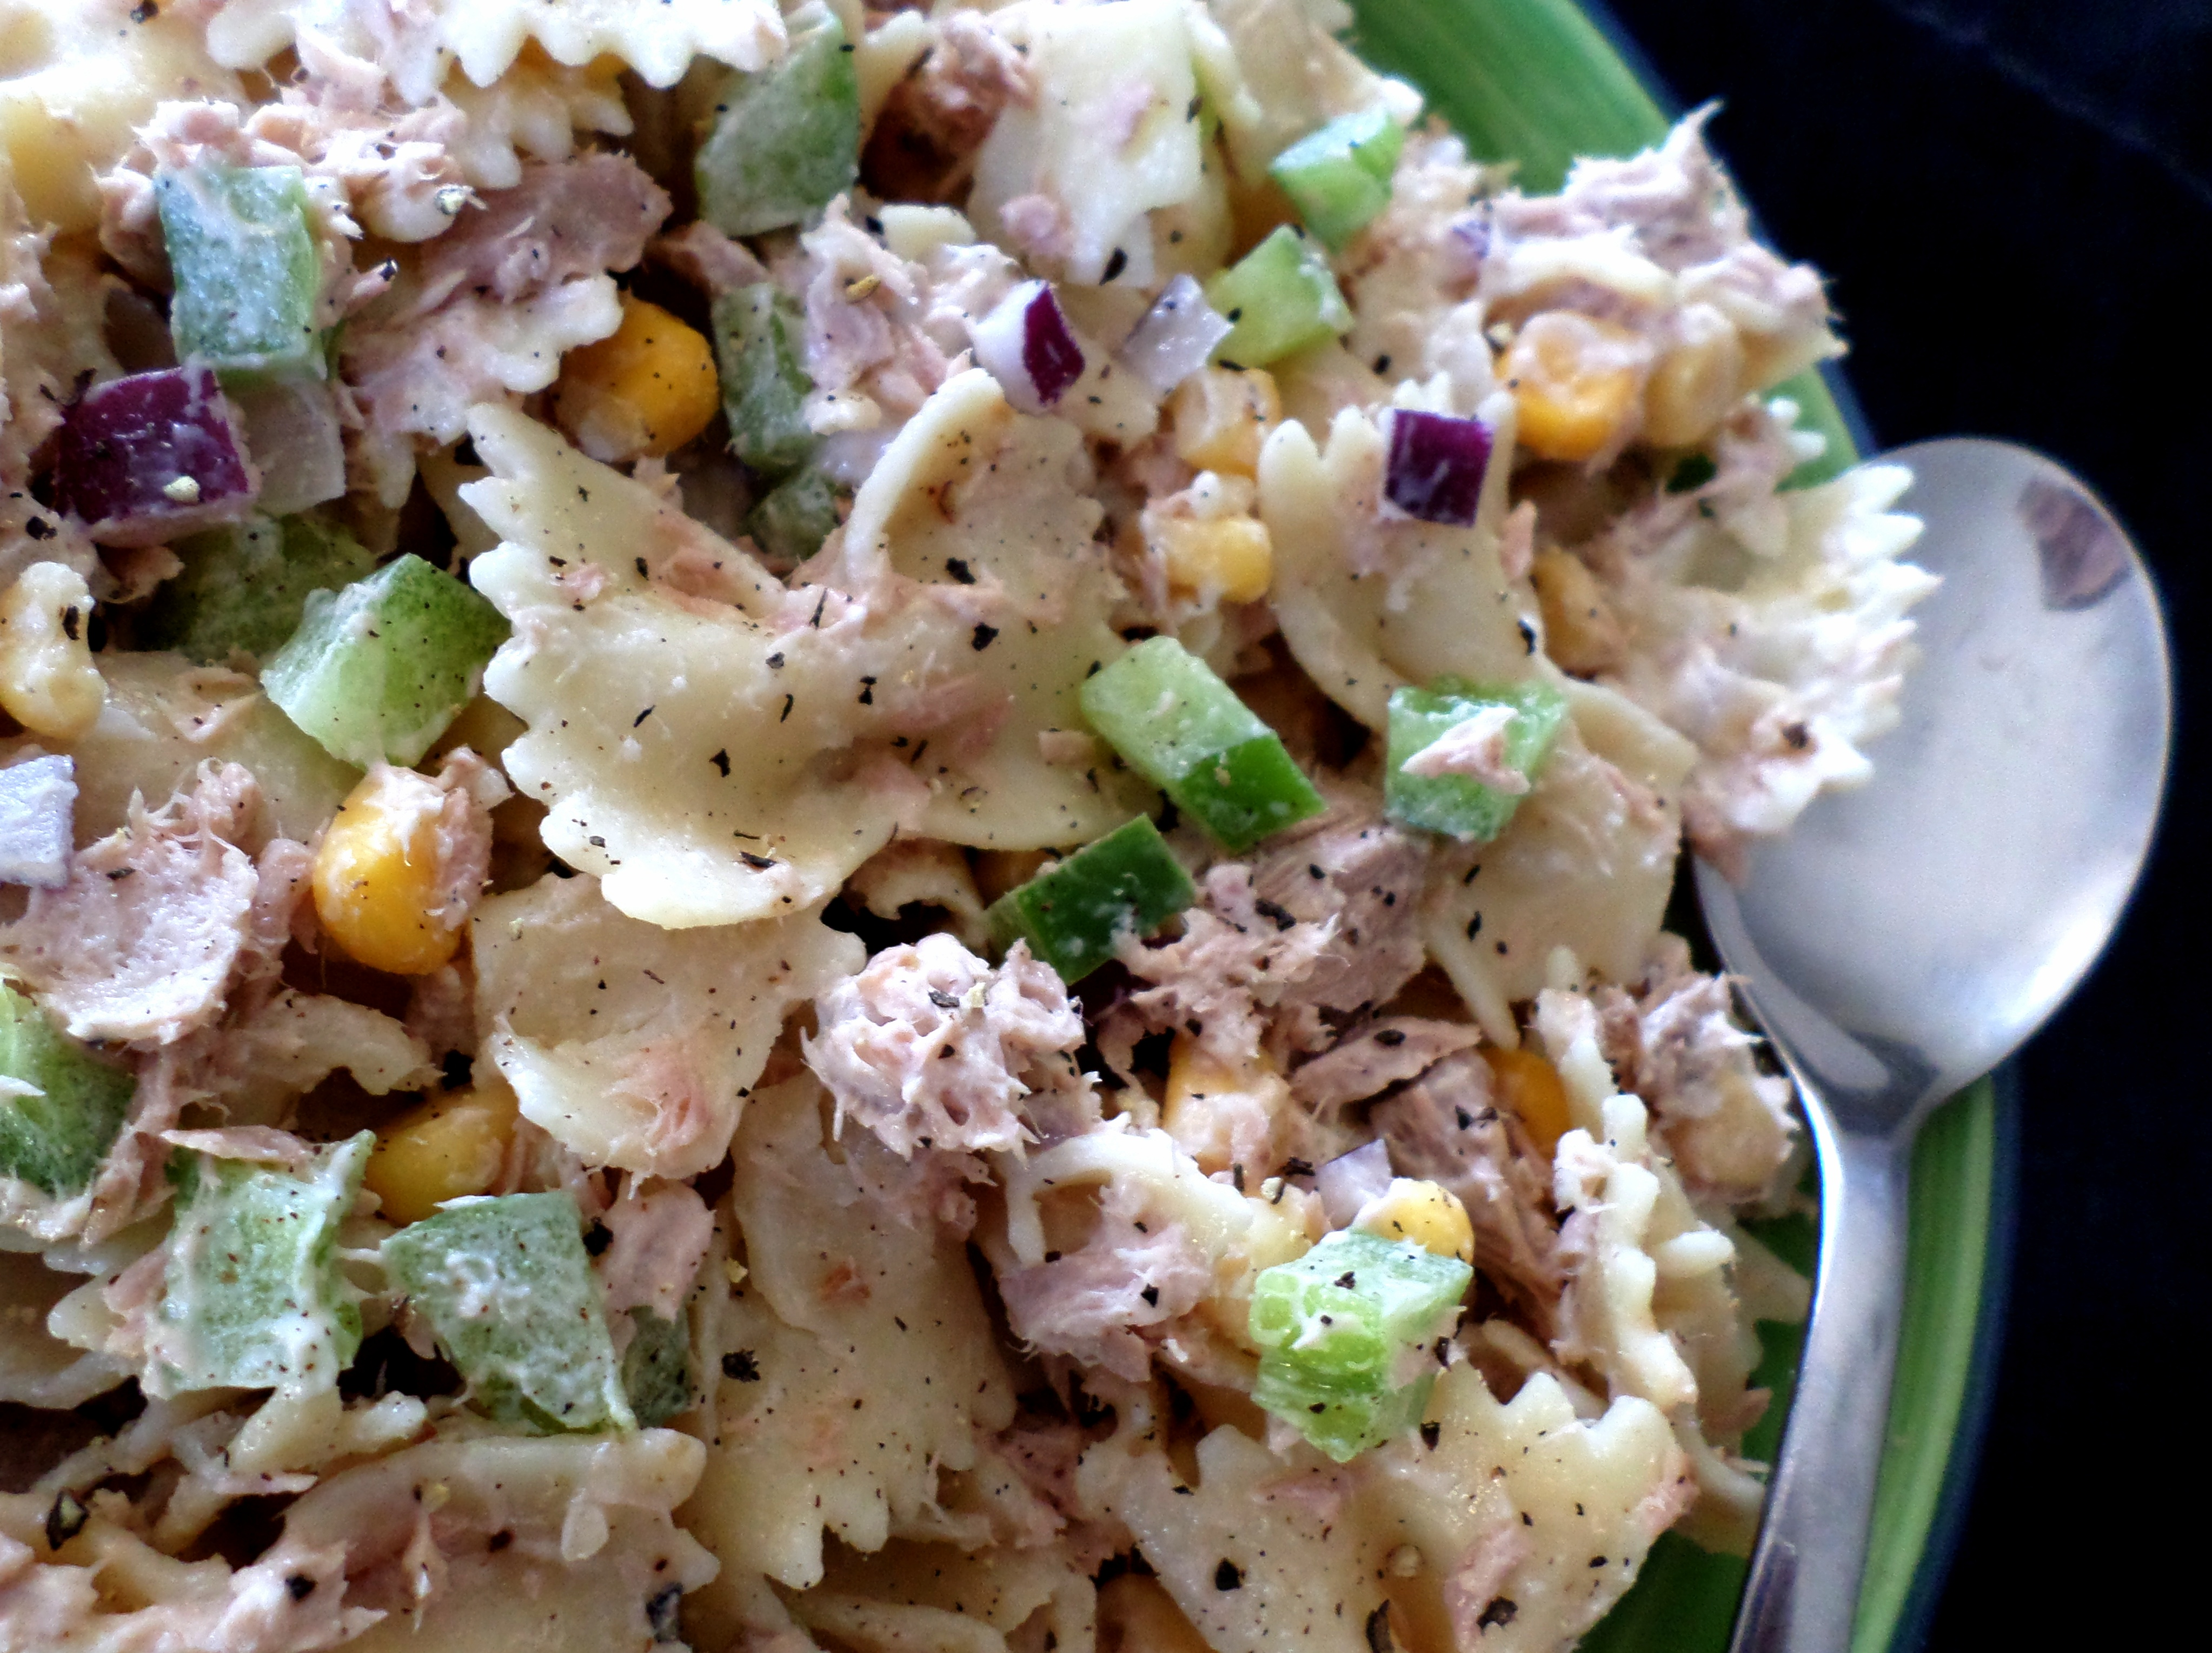 Tuna pasta salad with lemon and garlic aioli recipe adaptors for Tuna fish pasta